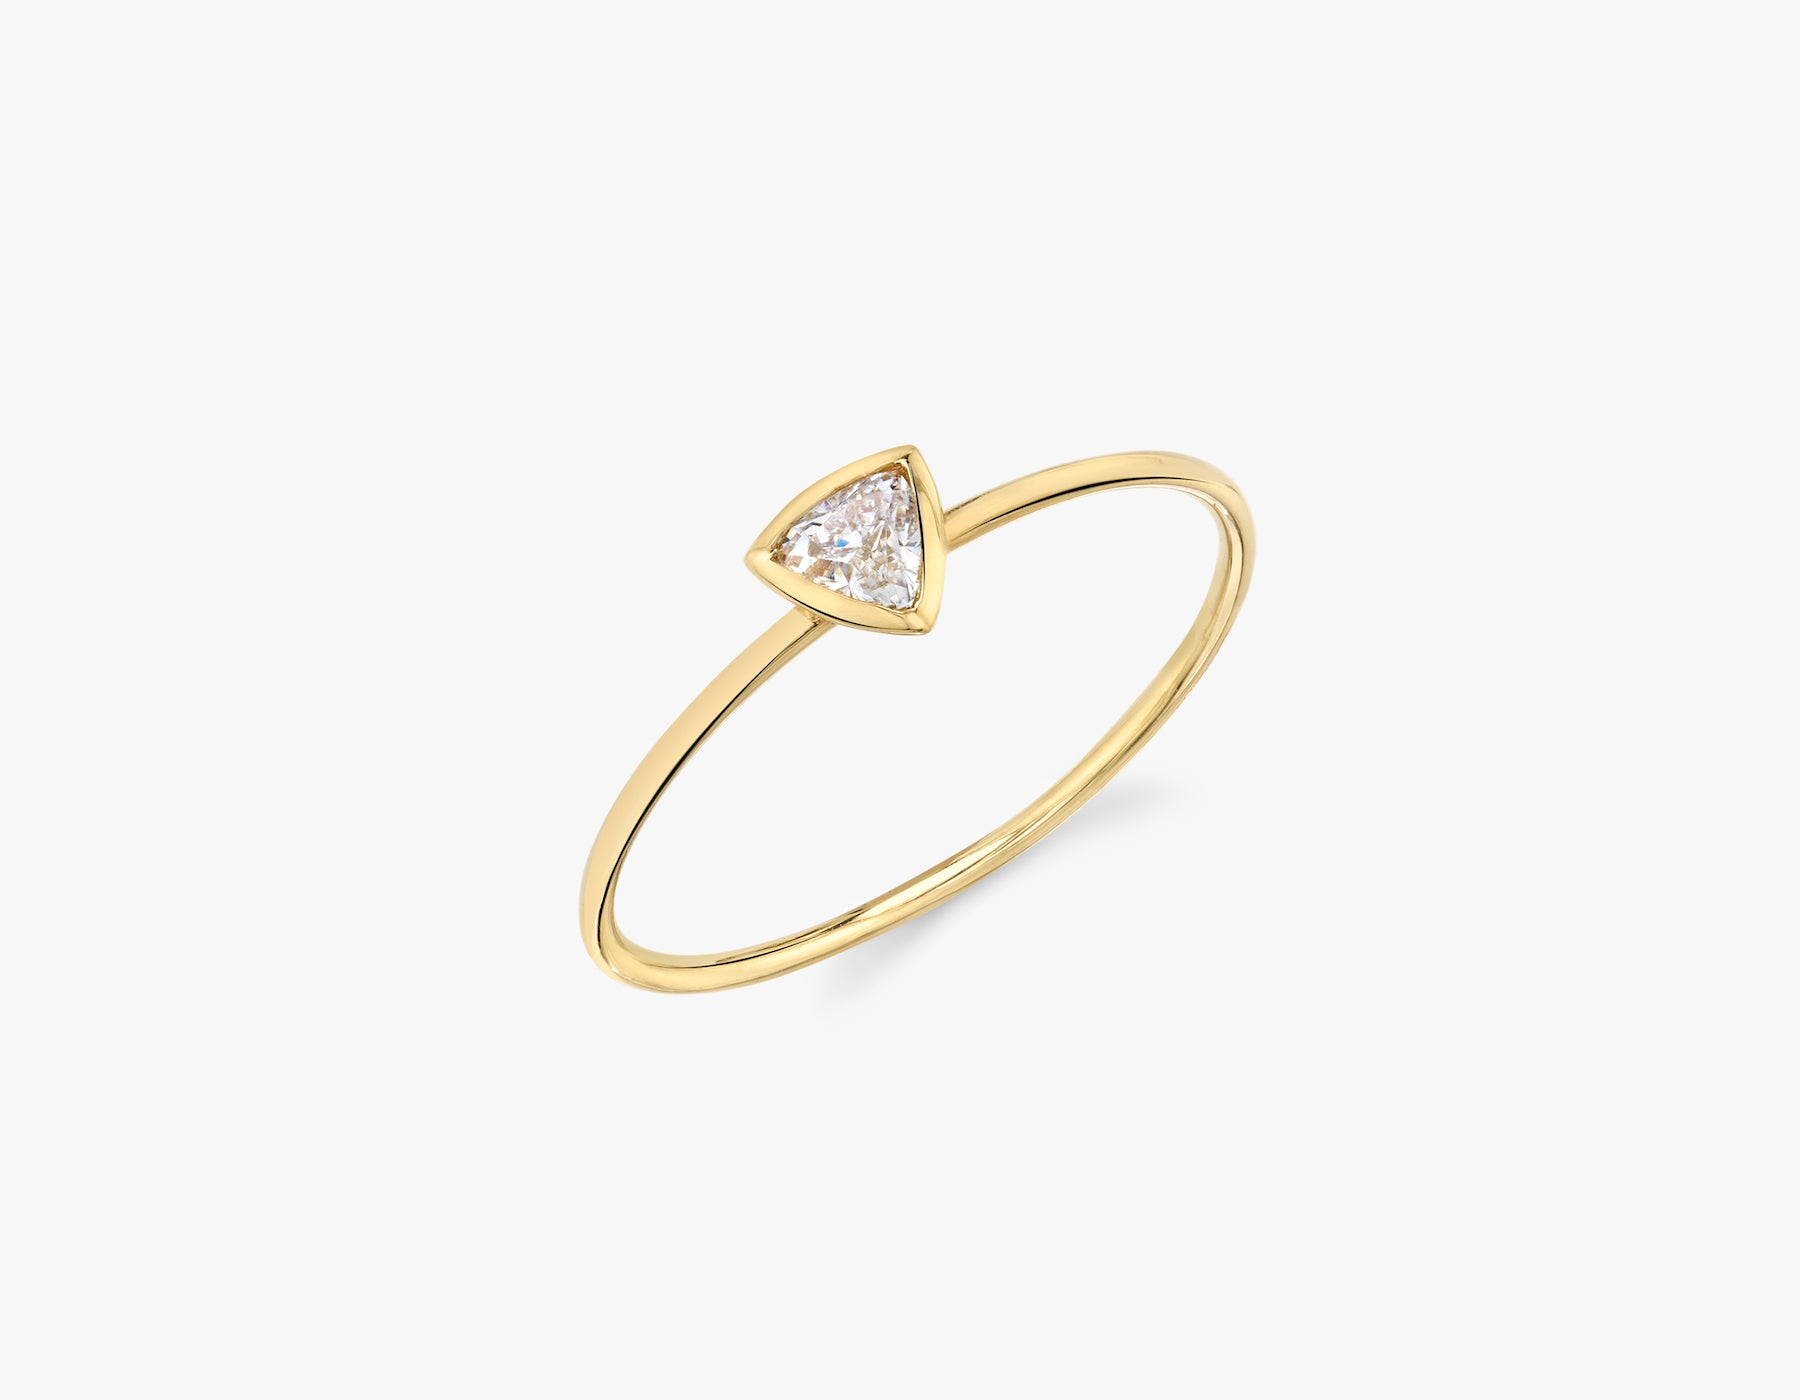 Vrai simple minimalist Trillion Diamond Bezel Ring, 14K Yellow Gold